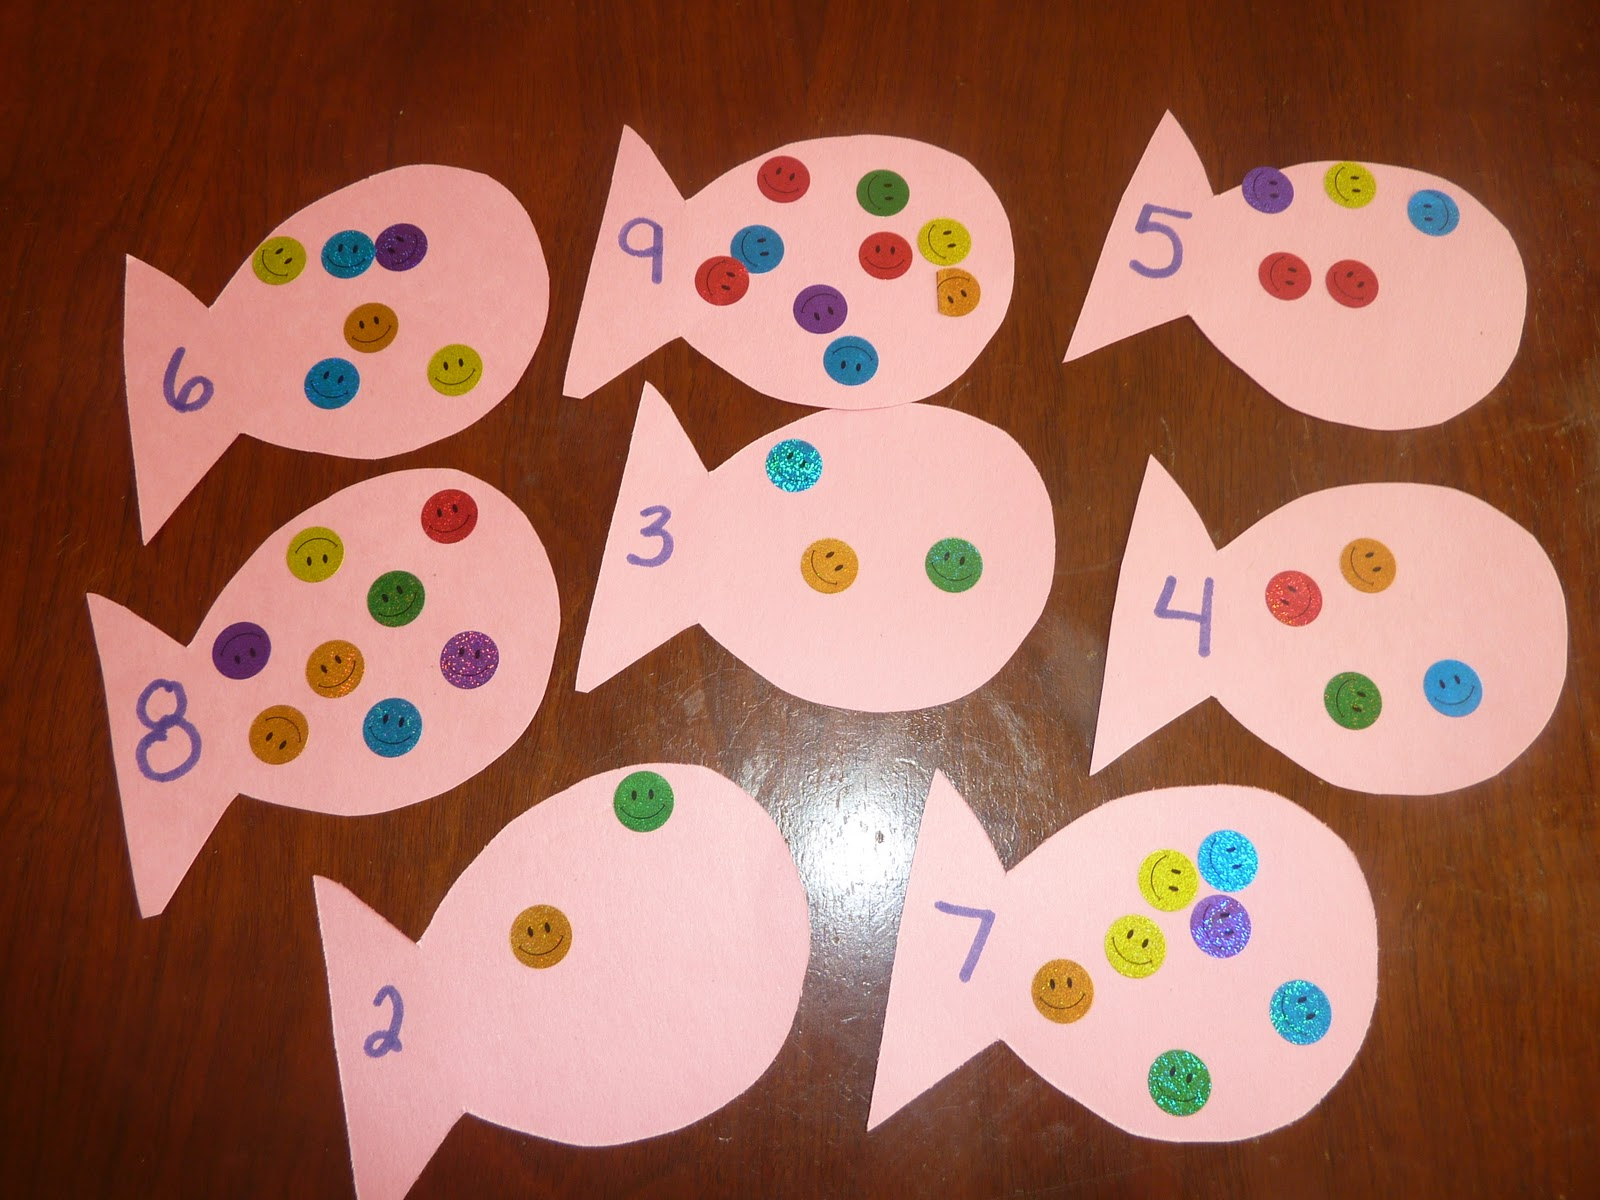 The Rainbow Fish Storytelling Kit From Lakeshore Is Packed With All The Cloth Characters And